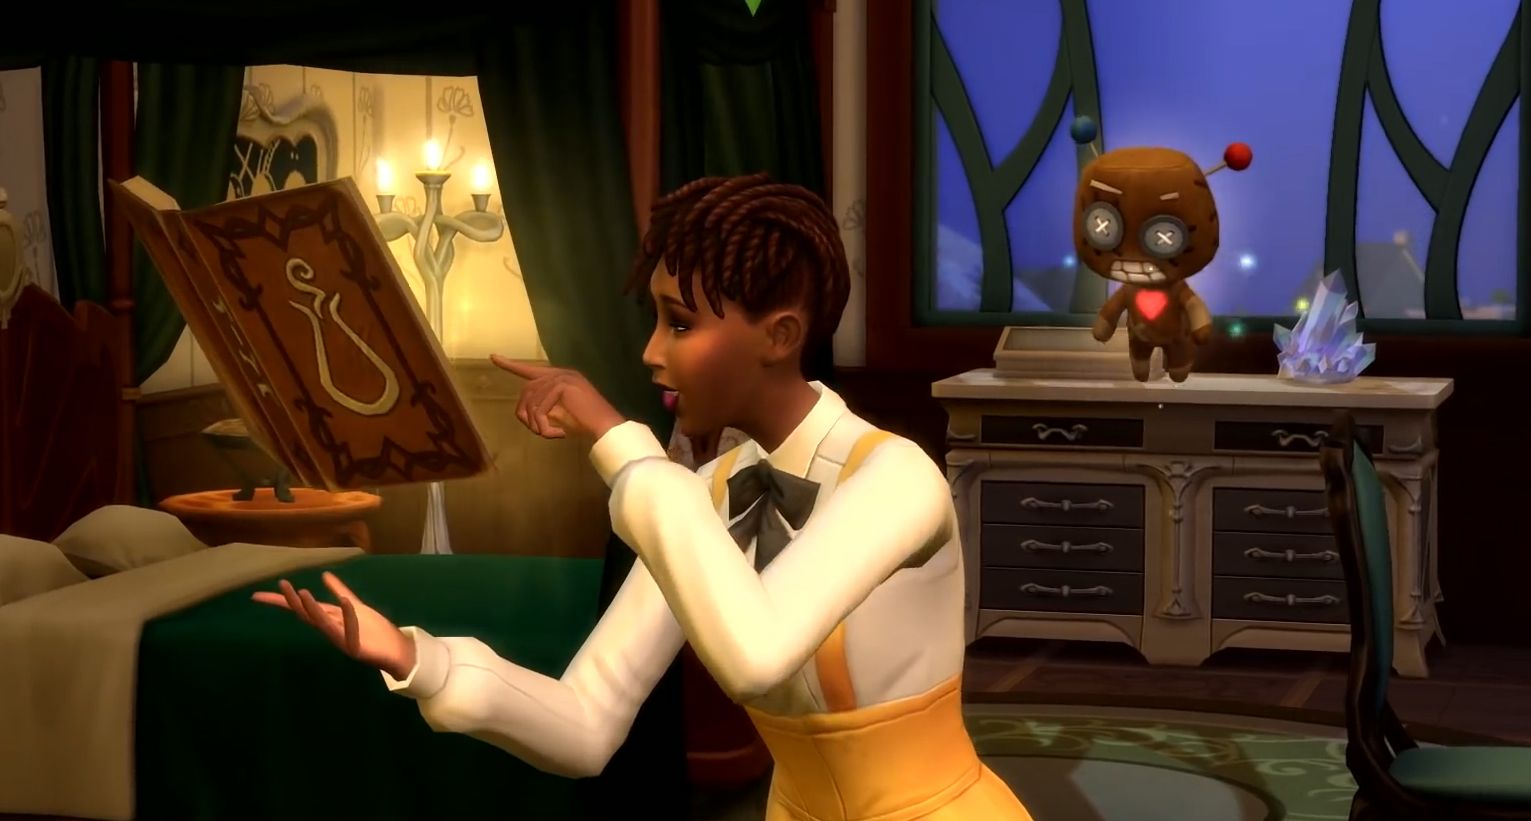 A sim learns a magic spell in The Sims 4 Realm of Magic